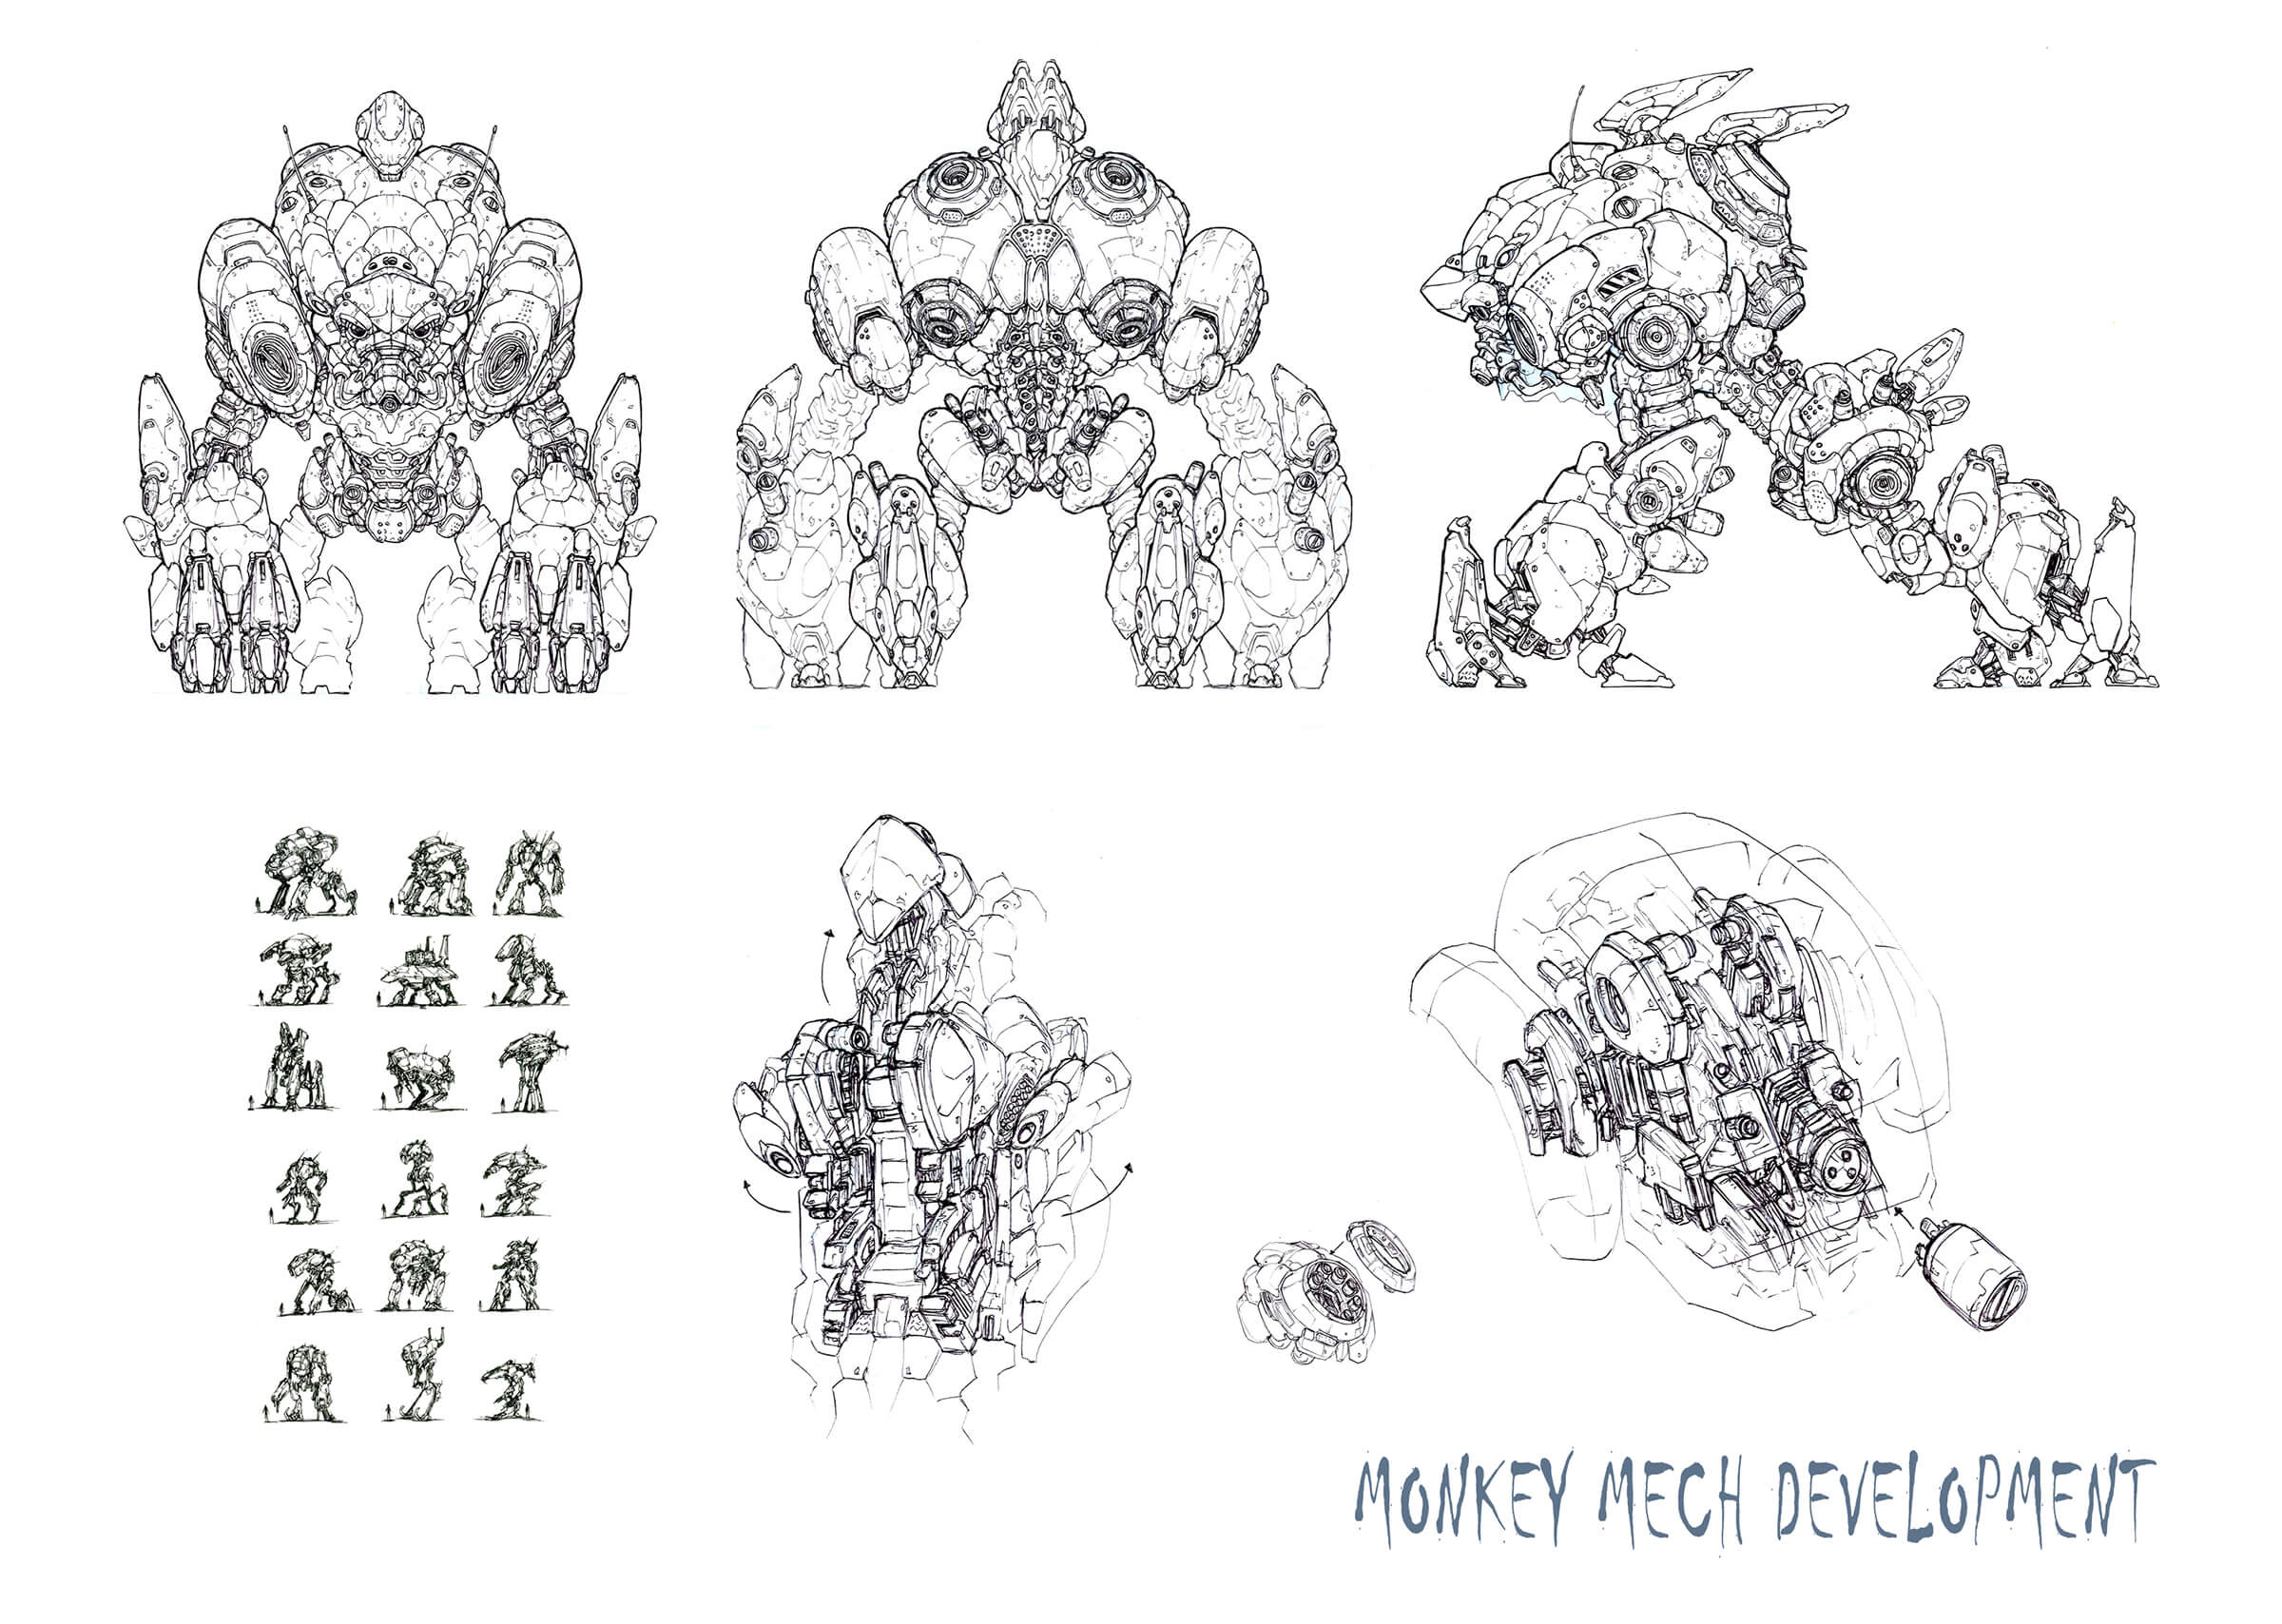 Black-and-white concept sketches and cross-sections of a hulking, quadrupedal mech machine in various resting poses.